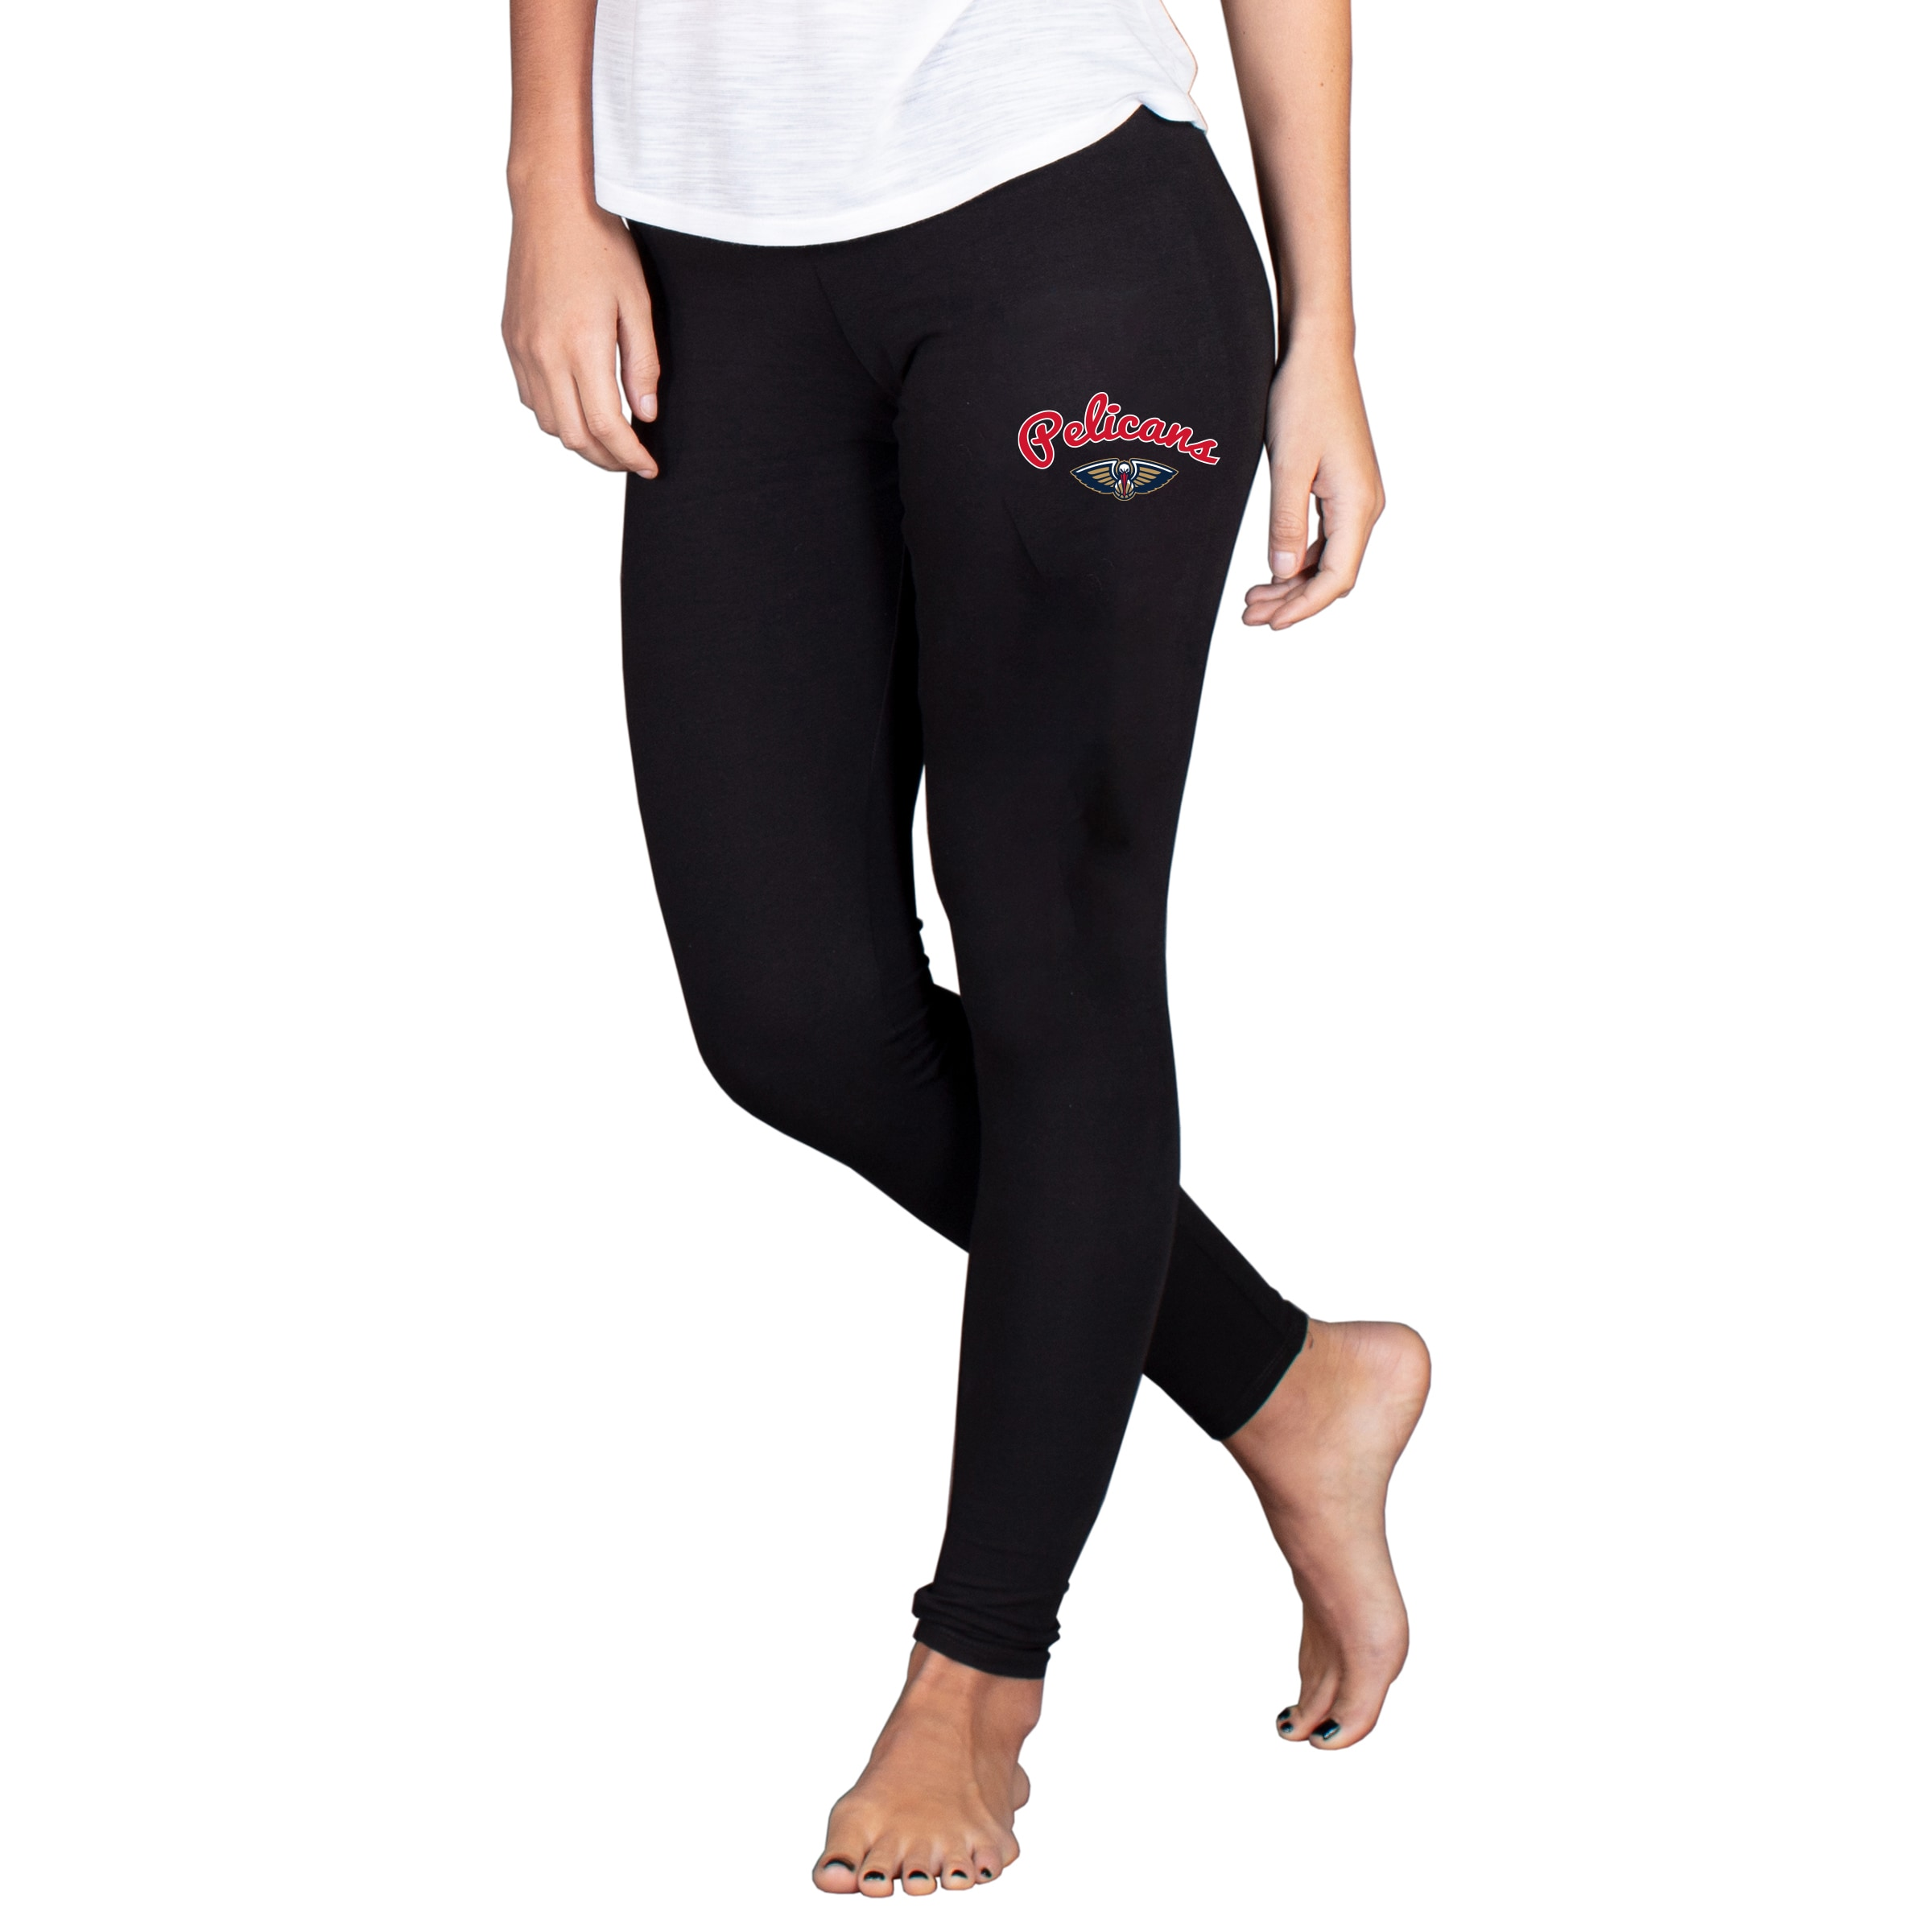 New Orleans Pelicans Concepts Sport Women's Fraction Leggings - Black